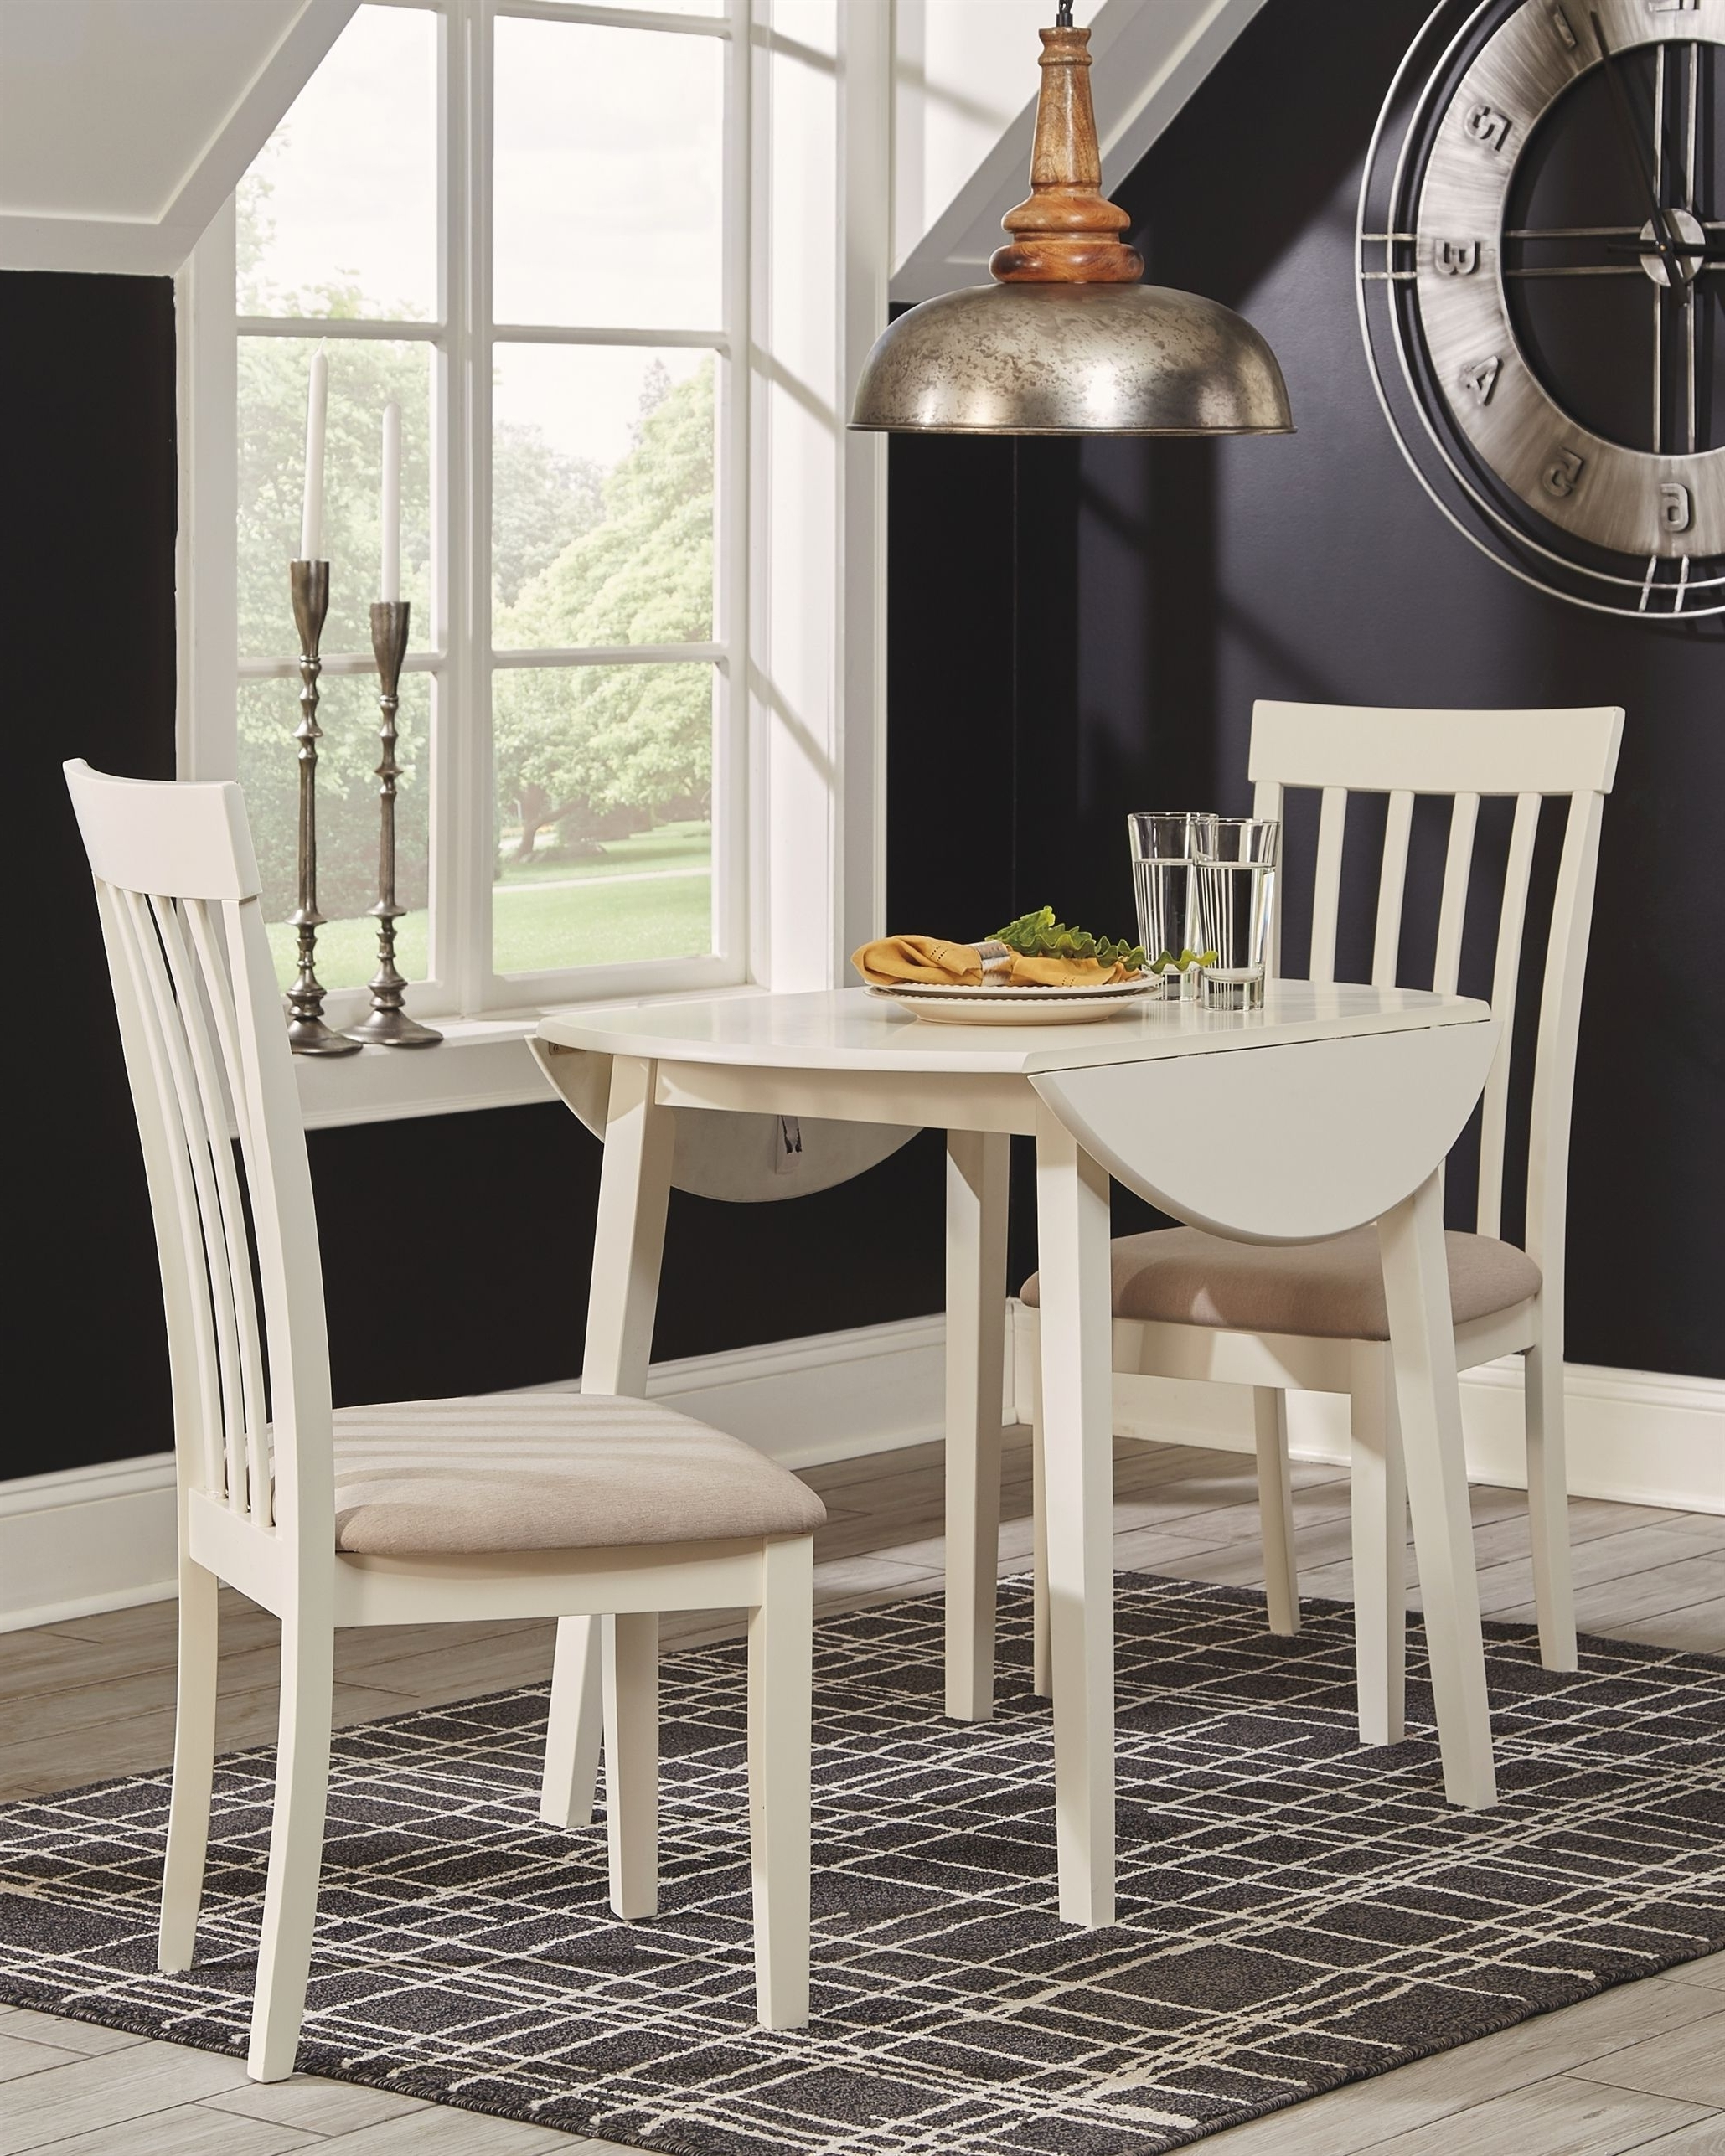 Popular Palazzo 7 Piece Rectangle Dining Sets With Joss Side Chairs Intended For Slannery Dining Room Chair (Set Of 2), White #diningroomchairs (View 9 of 25)